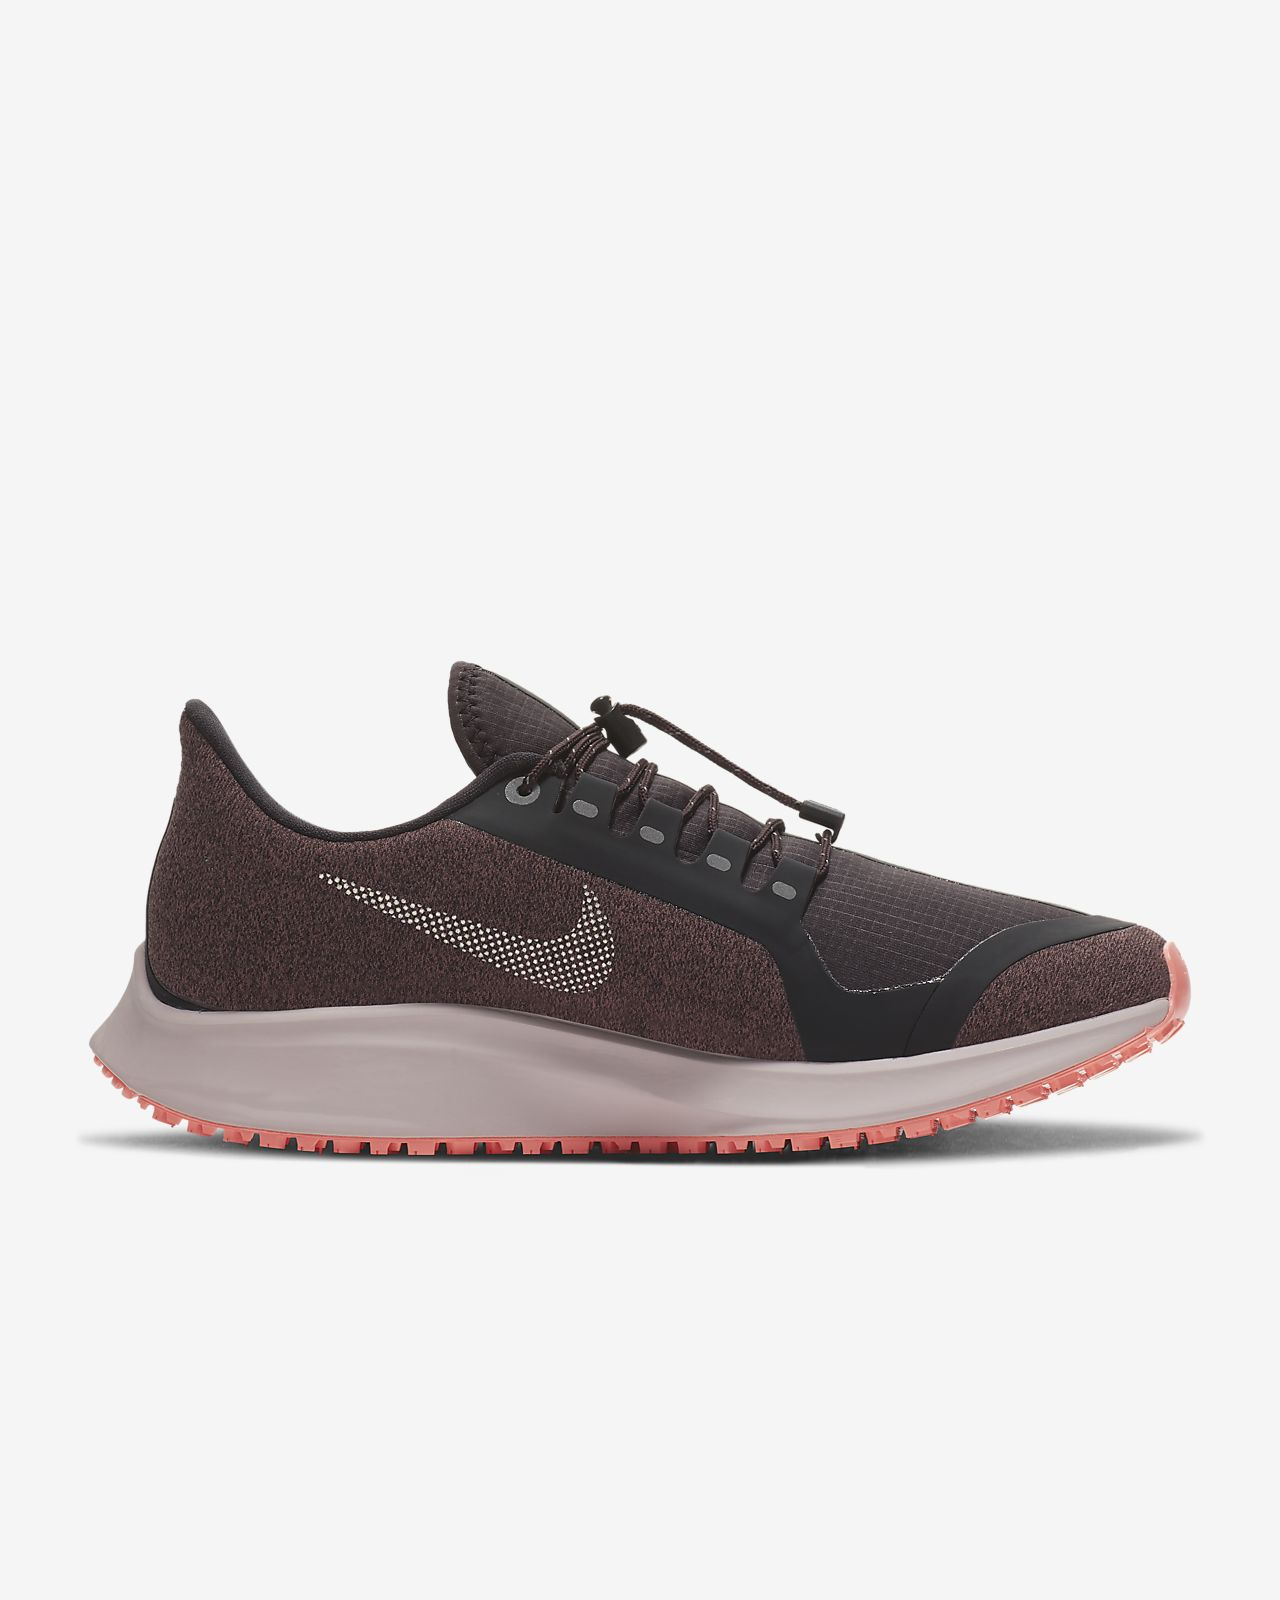 e318a21bb8a ... Calzado de running para mujer Nike Air Zoom Pegasus 35 Shield  Water-Repellent